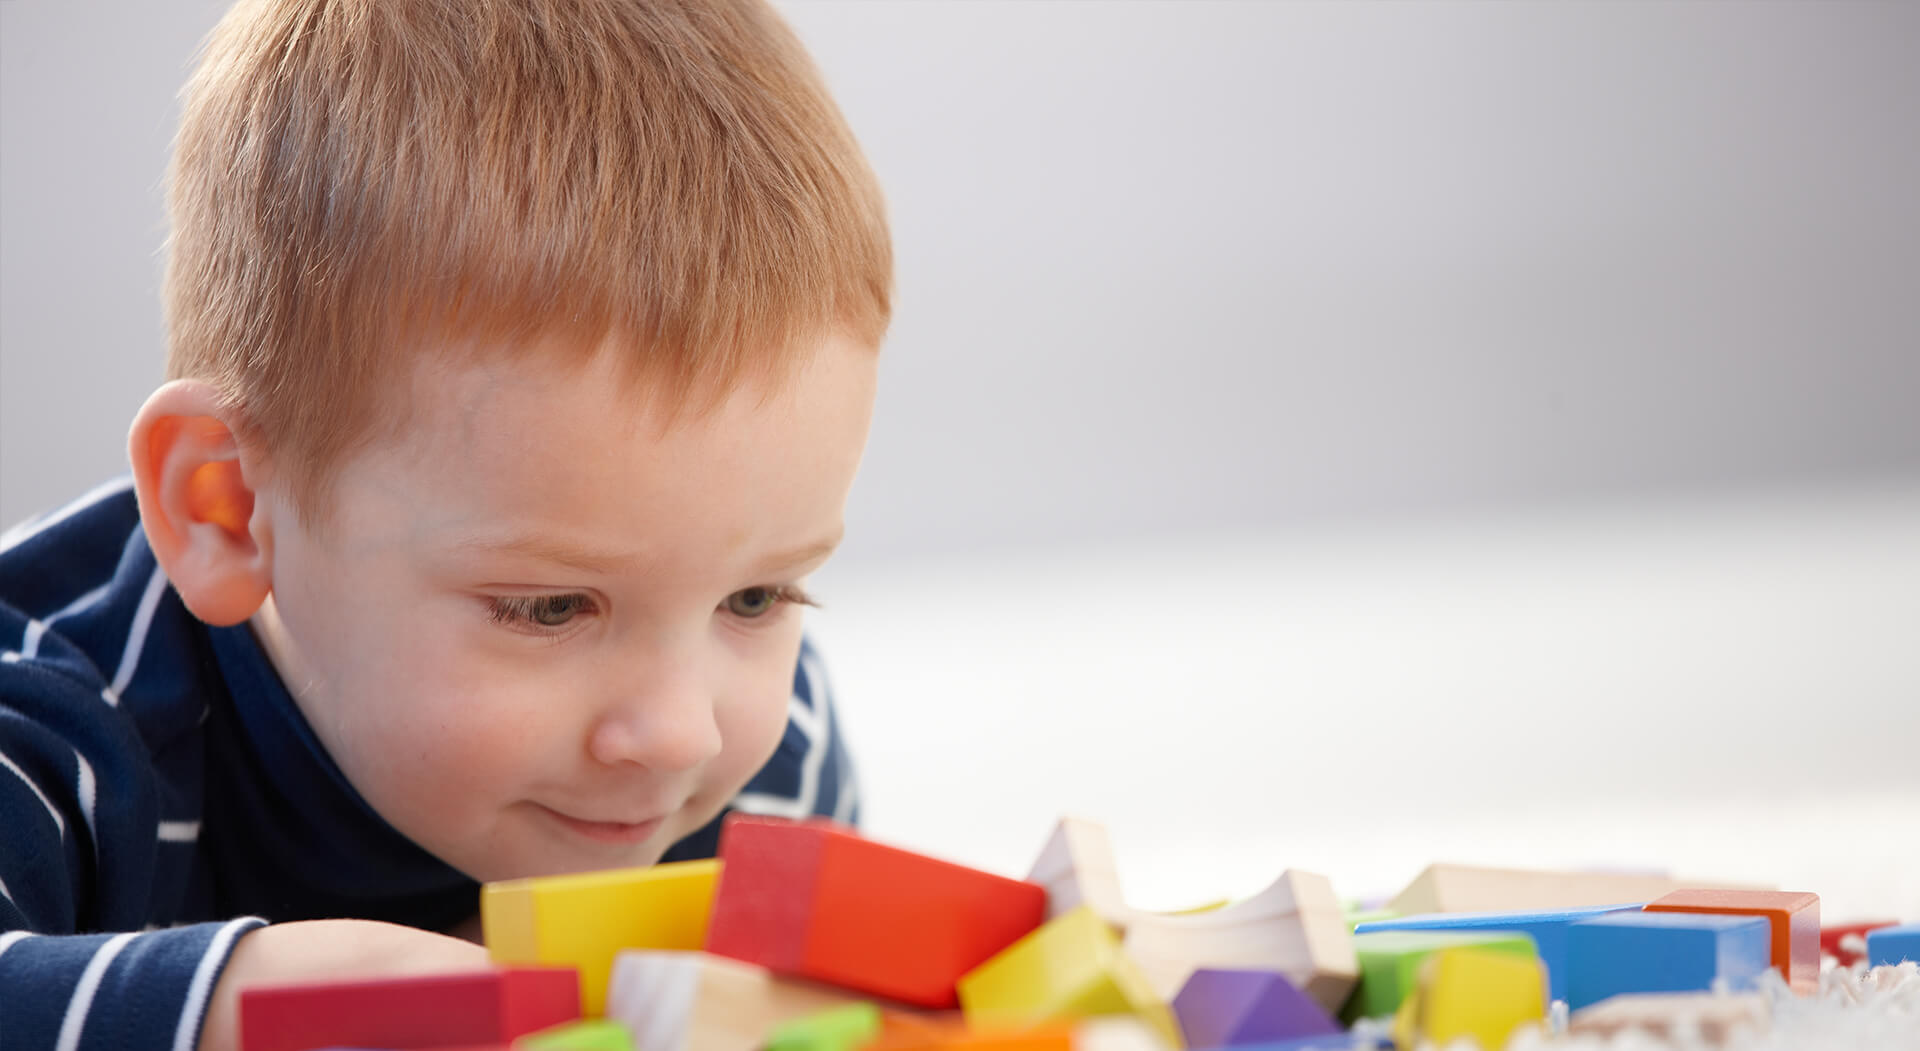 Child playing blocks - Pediatric Dentist in Fargo, ND